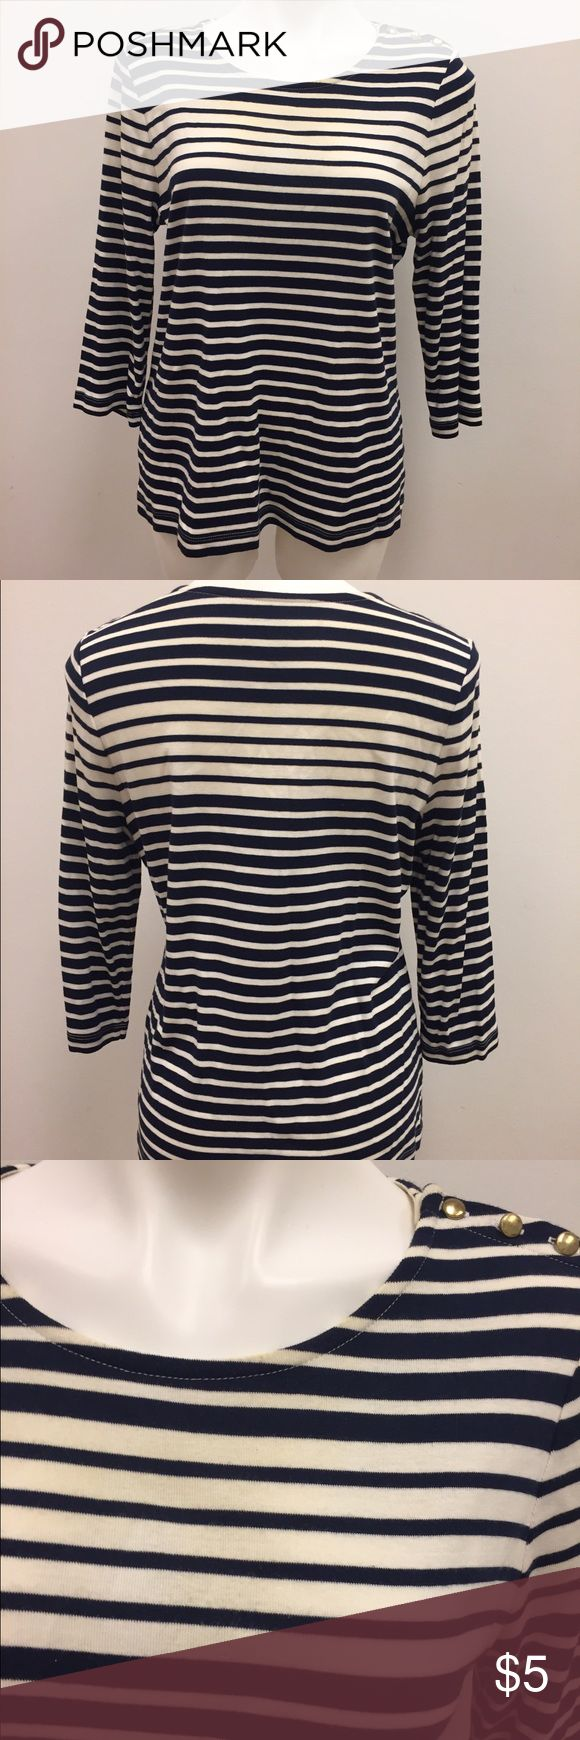 Nautical striped navy and cream top Cute graduated striped navy and cream Blouse from dressbarn in a size XL. It has a 3/4 length sleeve and is in good condition other than yellowing at the neck unfortunately. #stripes #nautical #summer Dress Barn Tops